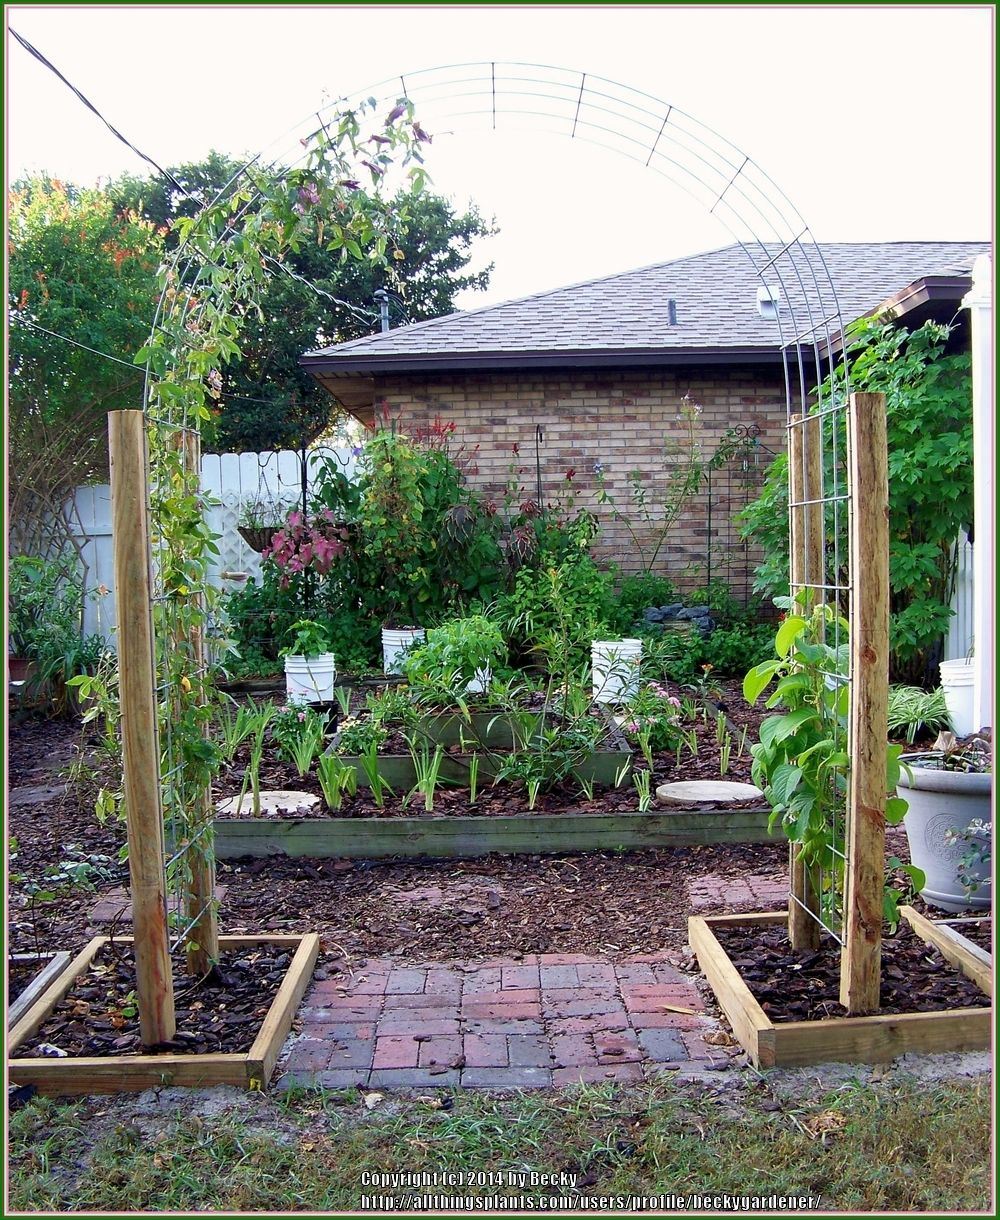 20 Brilliant Raised Garden Bed Ideas You Can Make In A: Feedlot Panels For Arbor...cheap Thumb Of 2014-12-30